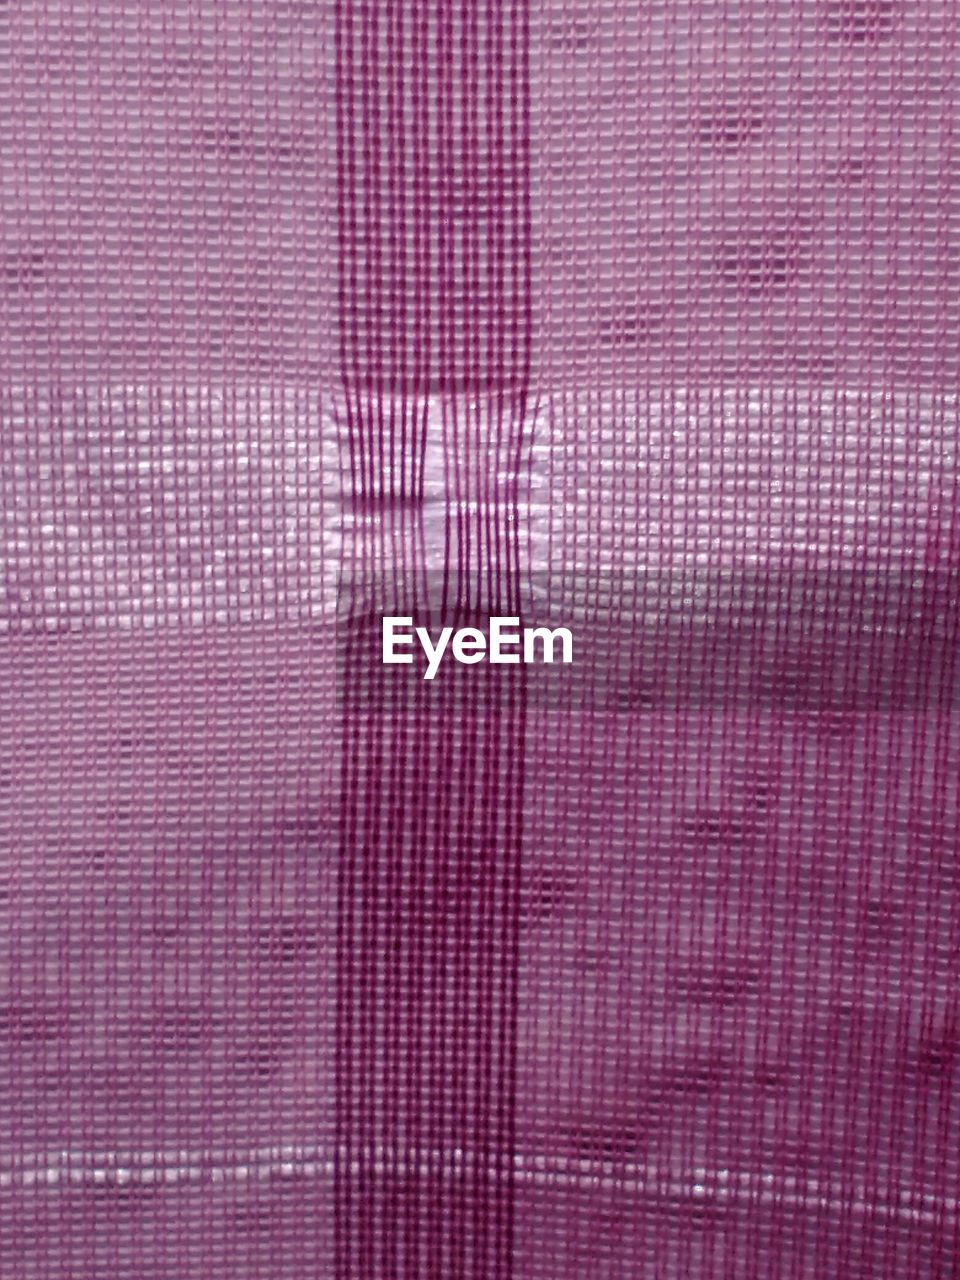 purple, full frame, textile, pink color, indoors, no people, backgrounds, pixelated, close-up, day